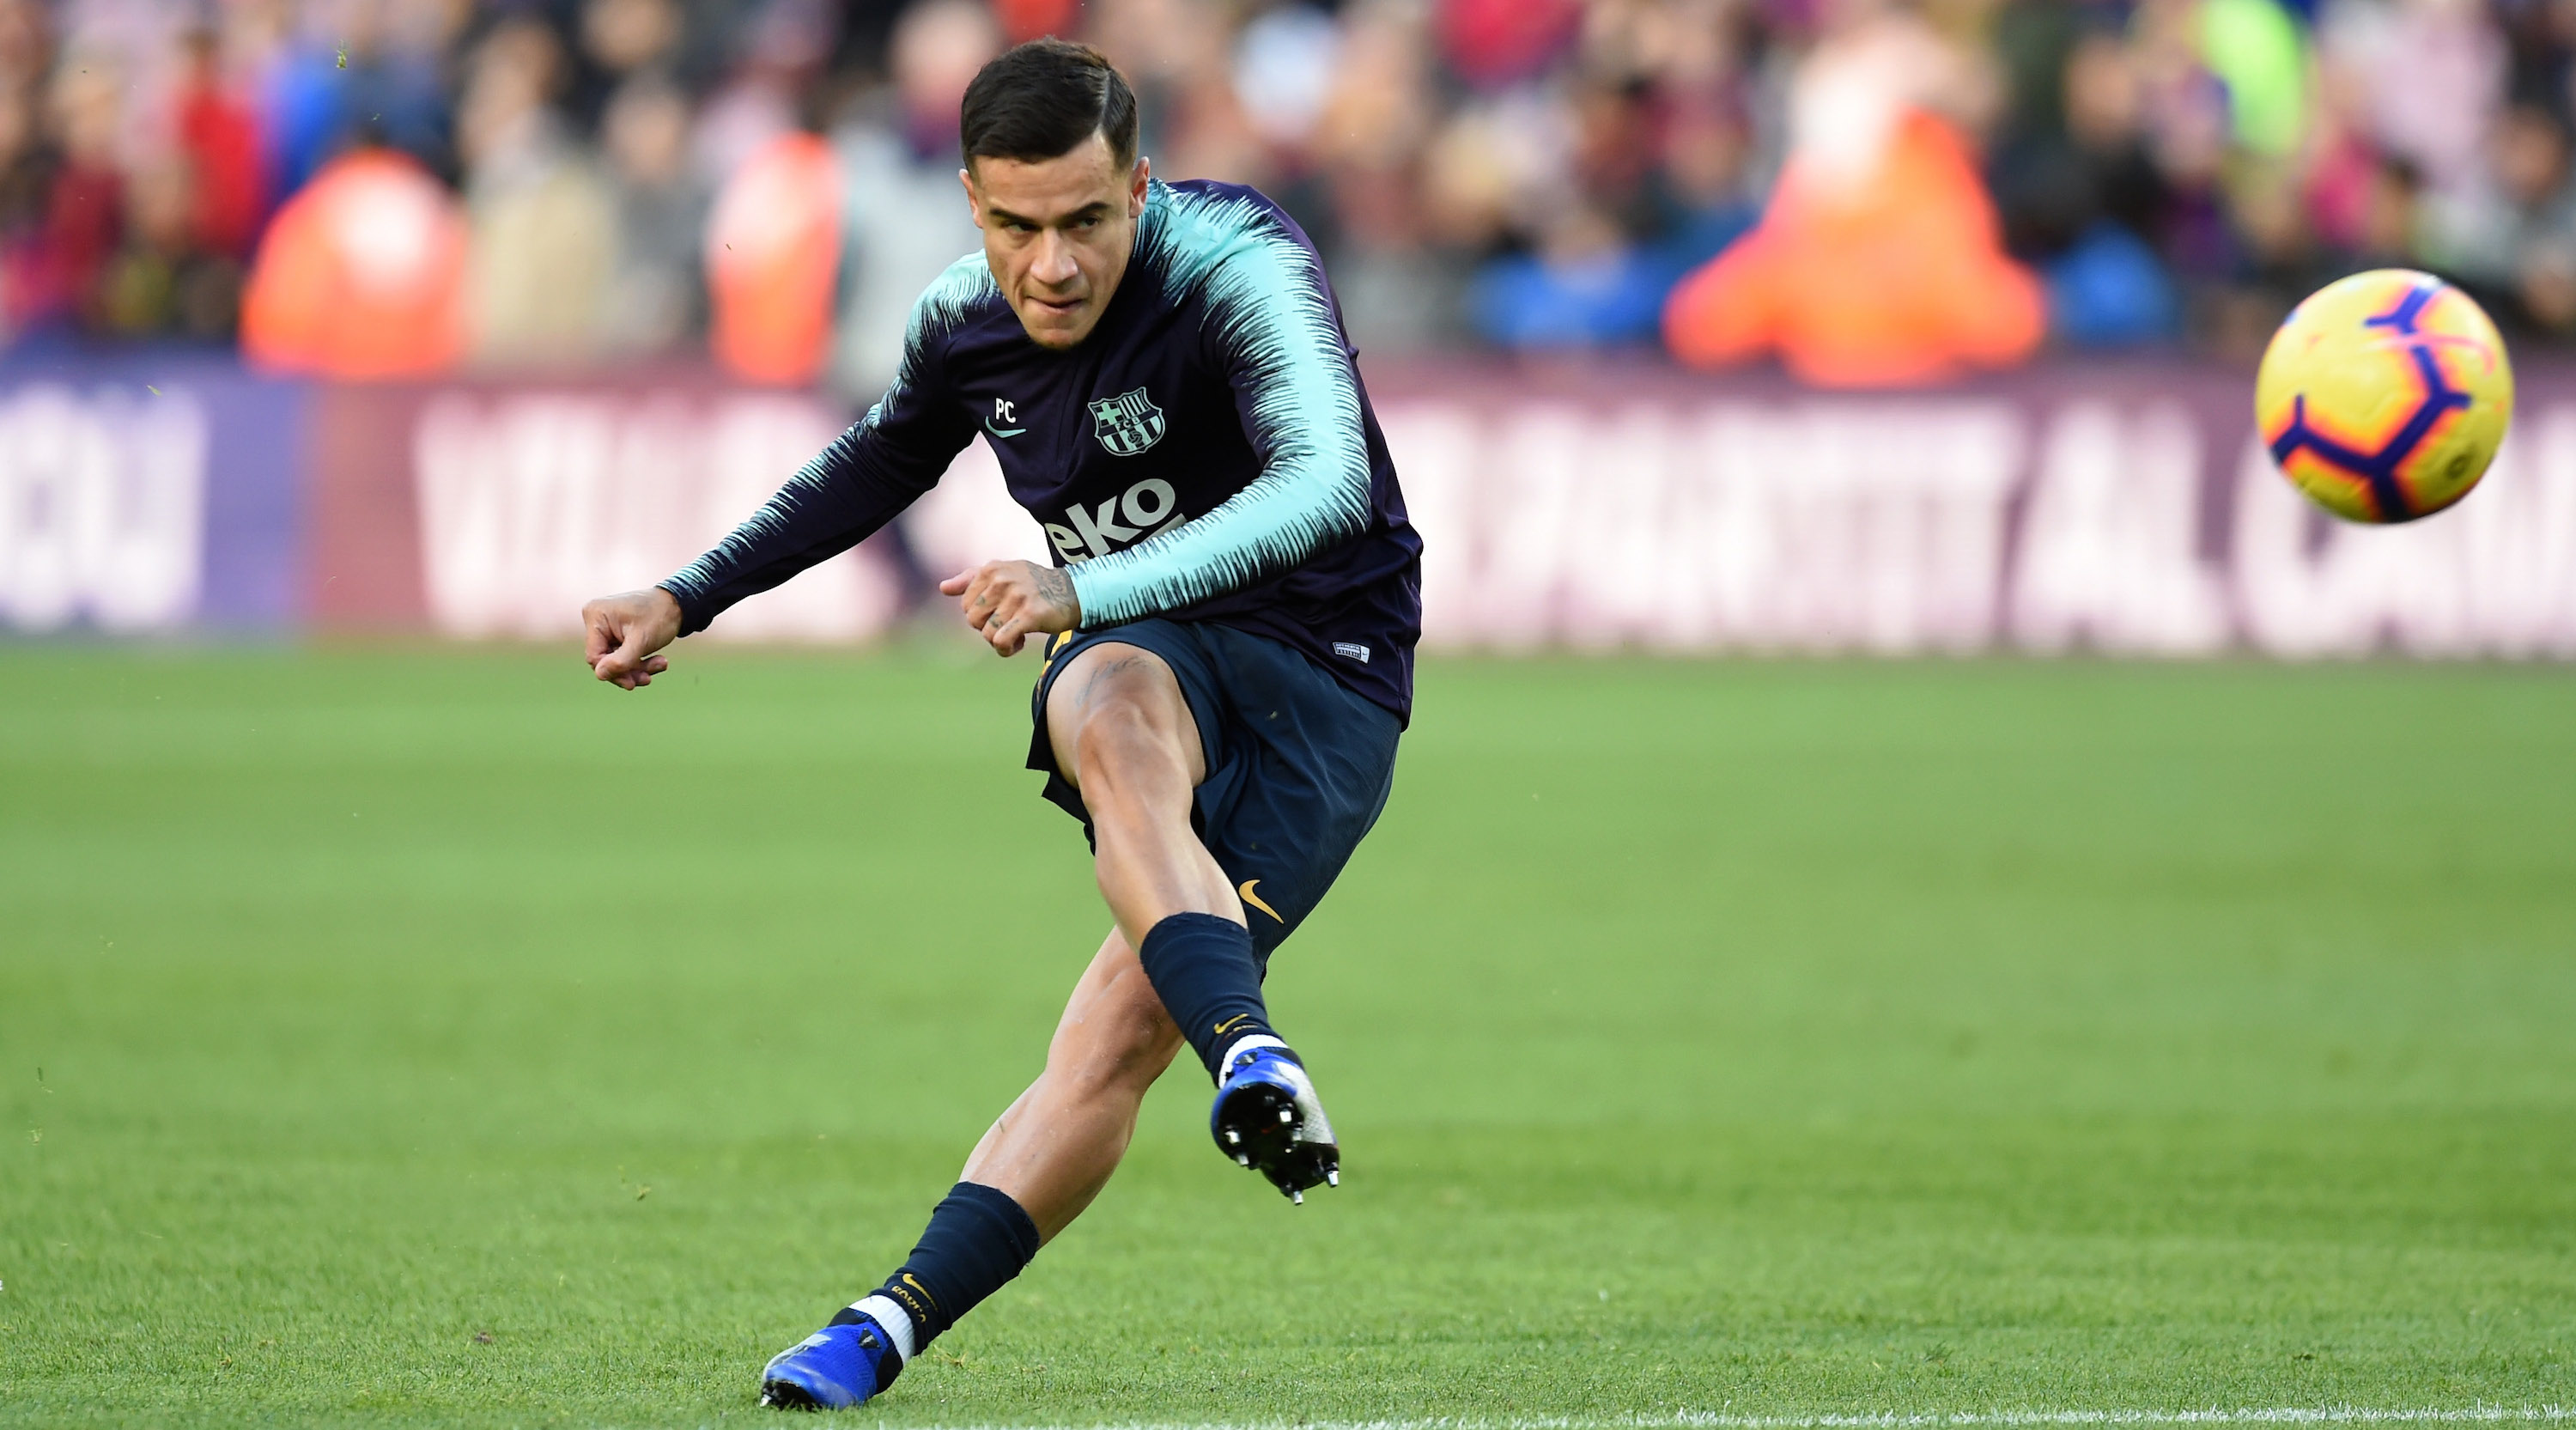 Philippe Coutinho of Barcelona shoots in the warm up prior to the La Liga match between FC Barcelona and Real Madrid CF at Camp Nou on October 28, 2018 in Barcelona, Spain. (Photo by Alex Caparros/Getty Images)